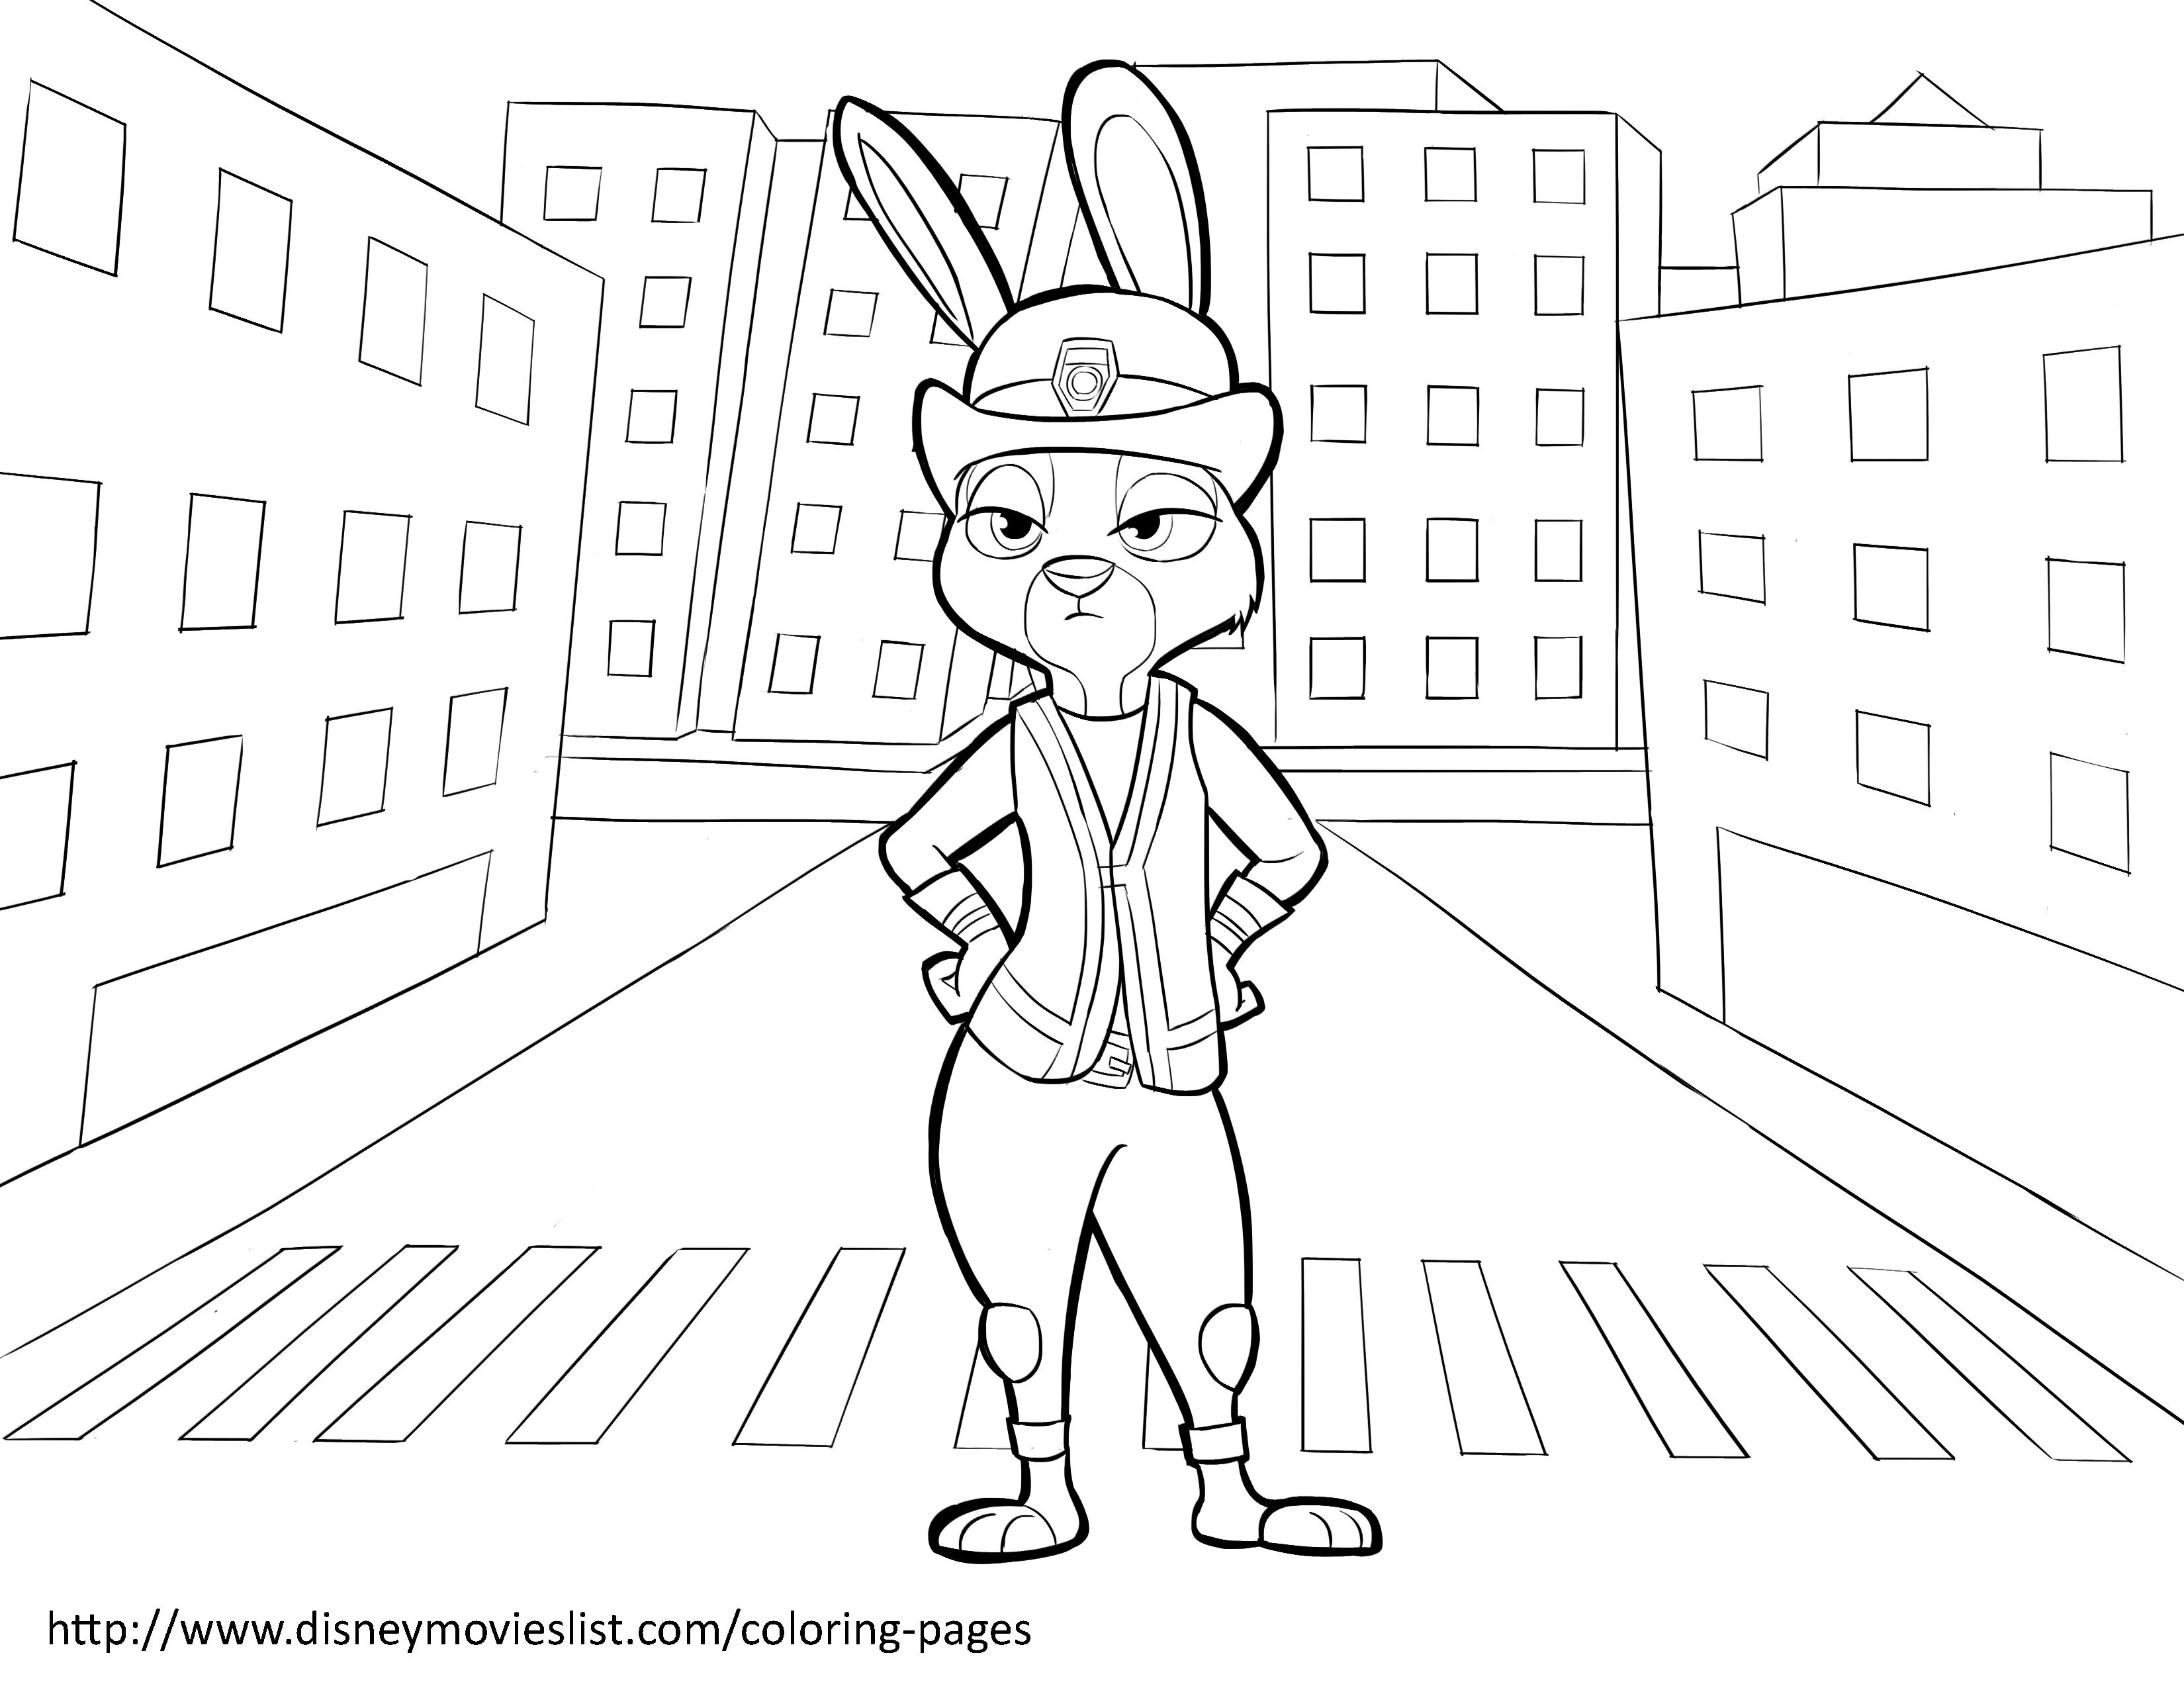 Zootopia Coloring Pages For Kids Free Coloring Pages Pinterest